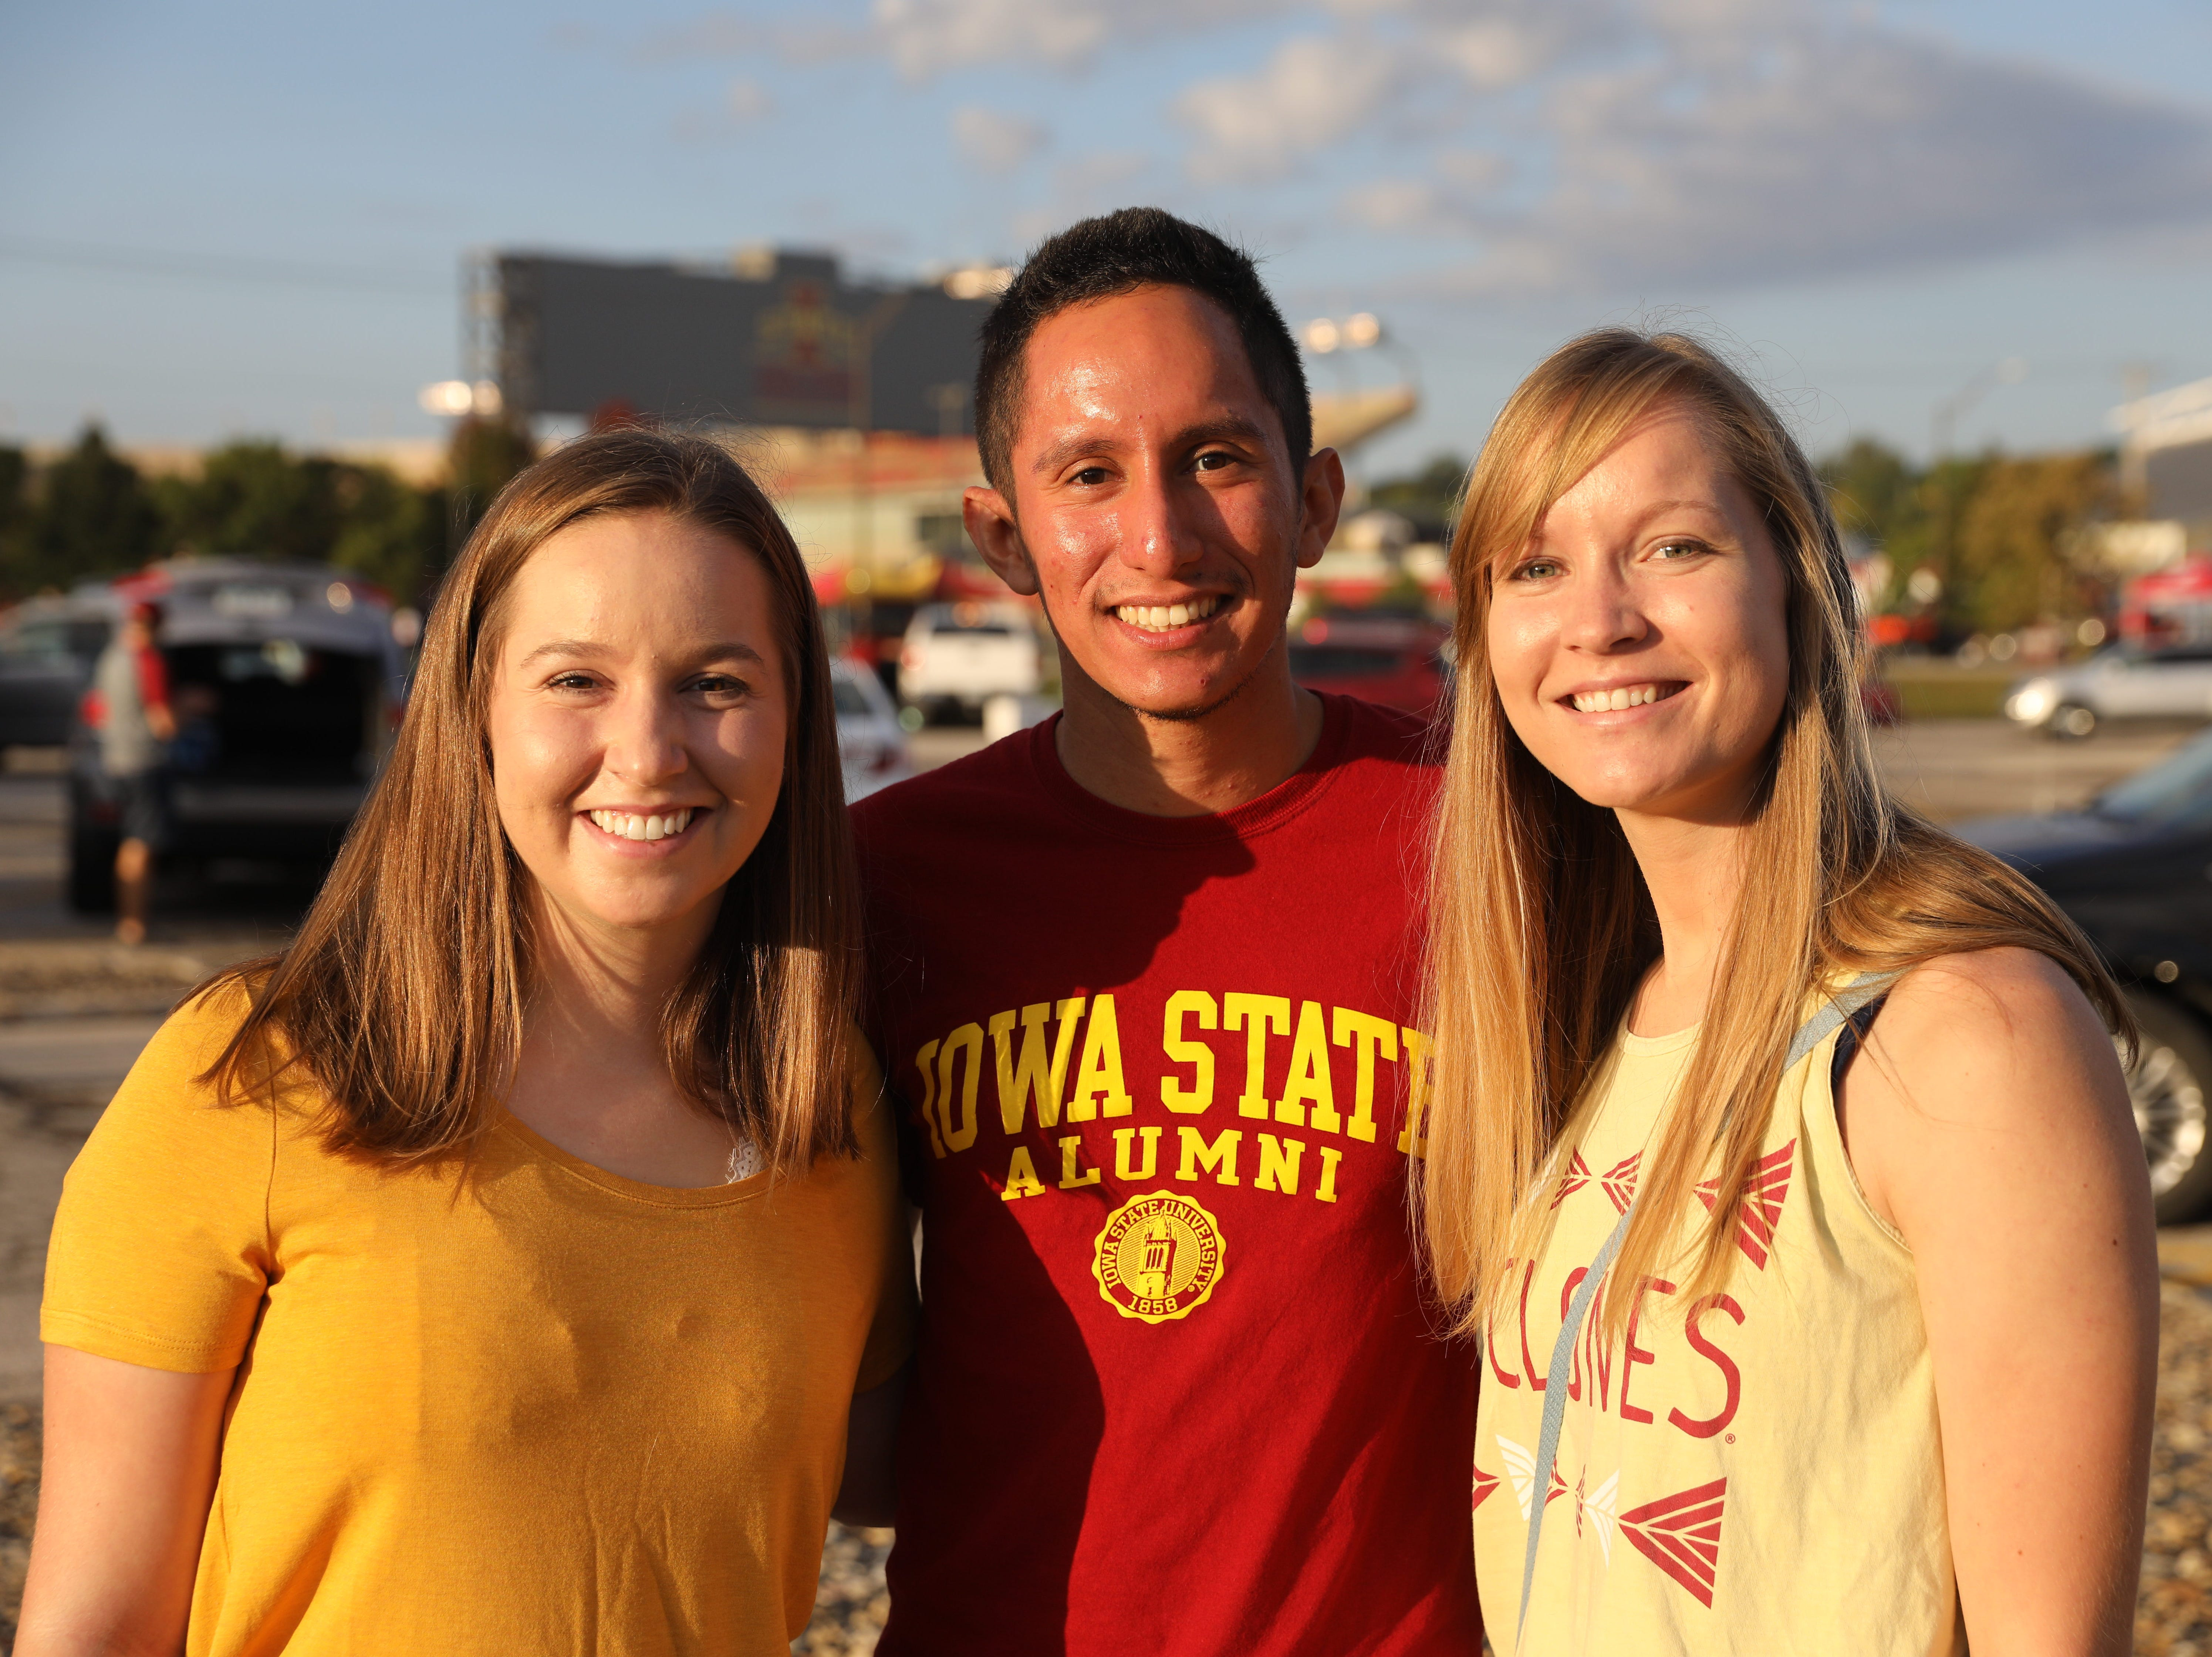 Emily Mickelson, 21, of Waukee (from left), Alberto Lara, 25, of West Des Moines, and Kylie Mickelson, 24, of Waukee, Saturday, Sept. 15, 2018, before the Iowa State football game against Oklahoma in Ames.